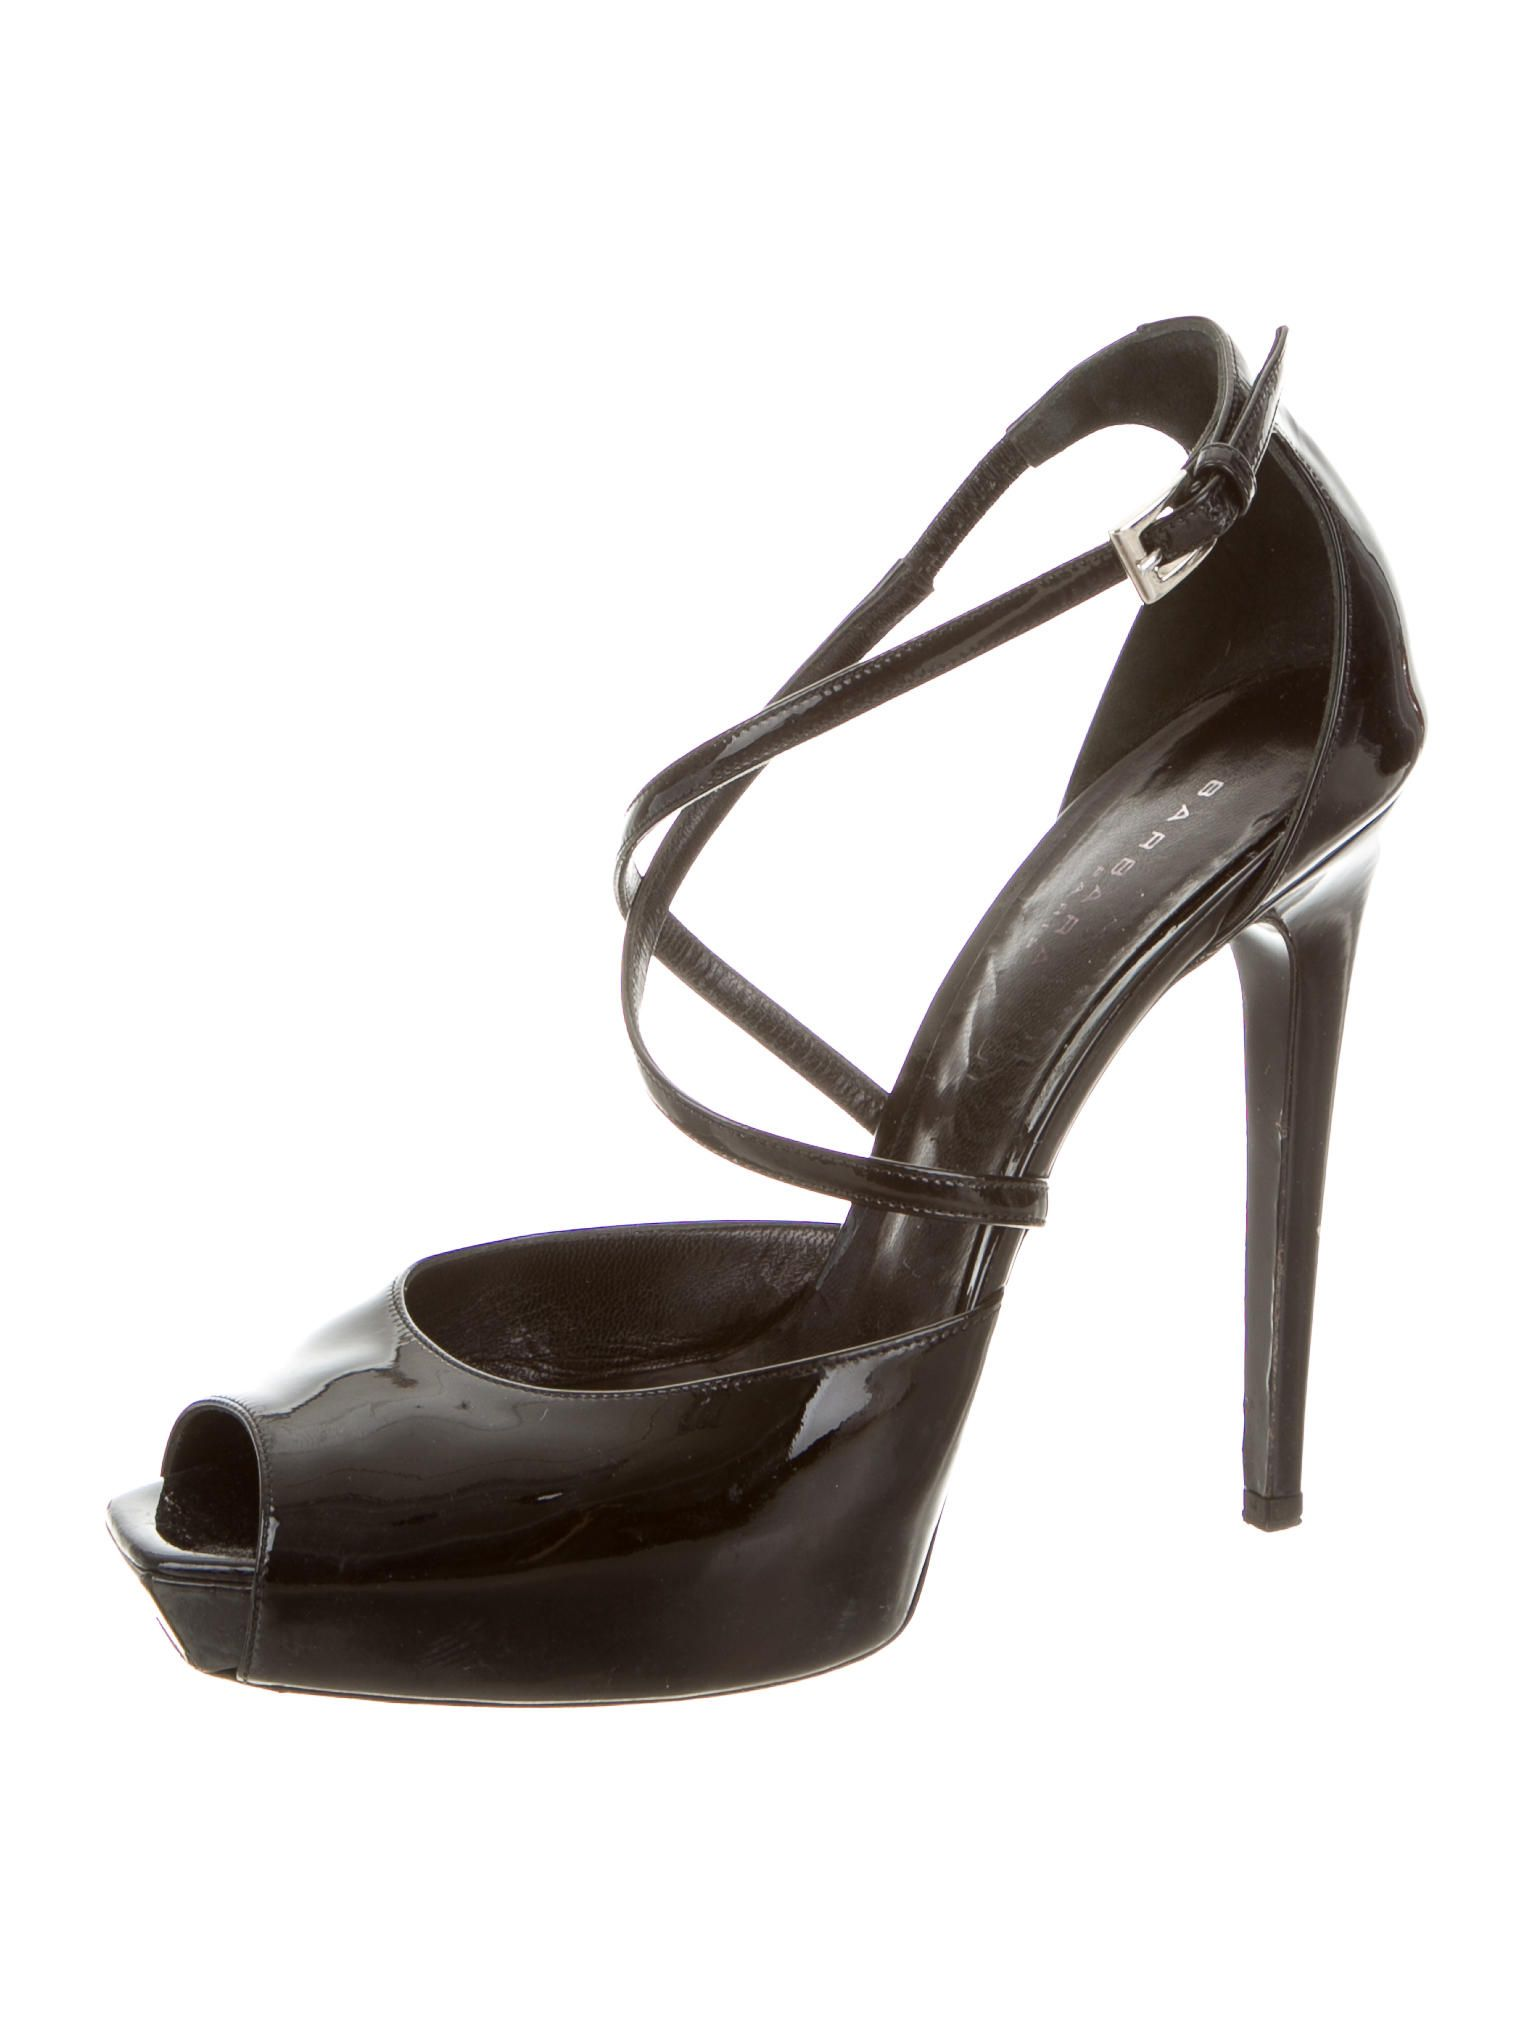 Barbara Bui Patent Leather Peep-Toe Pumps from china cheap online Cheapest online buy cheap low shipping gNdh9jD